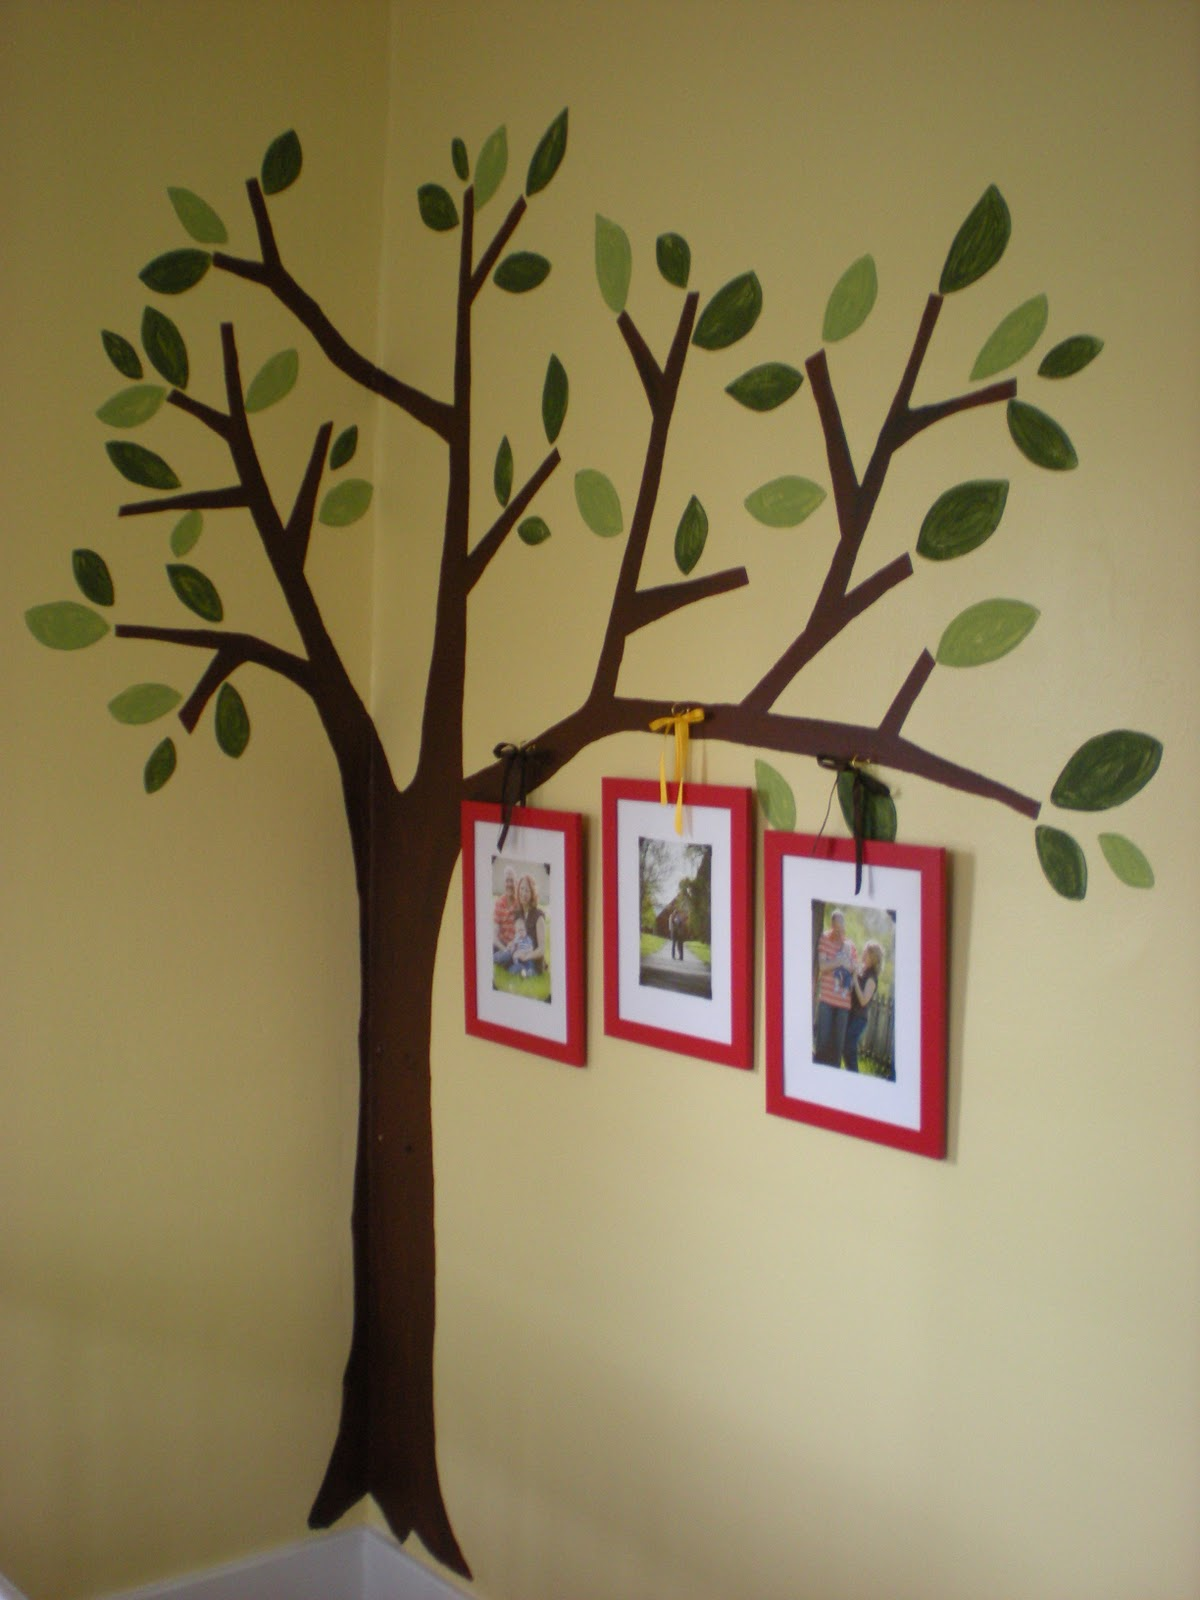 Joy 2 sew tree wall mural completed for Black tree wall mural